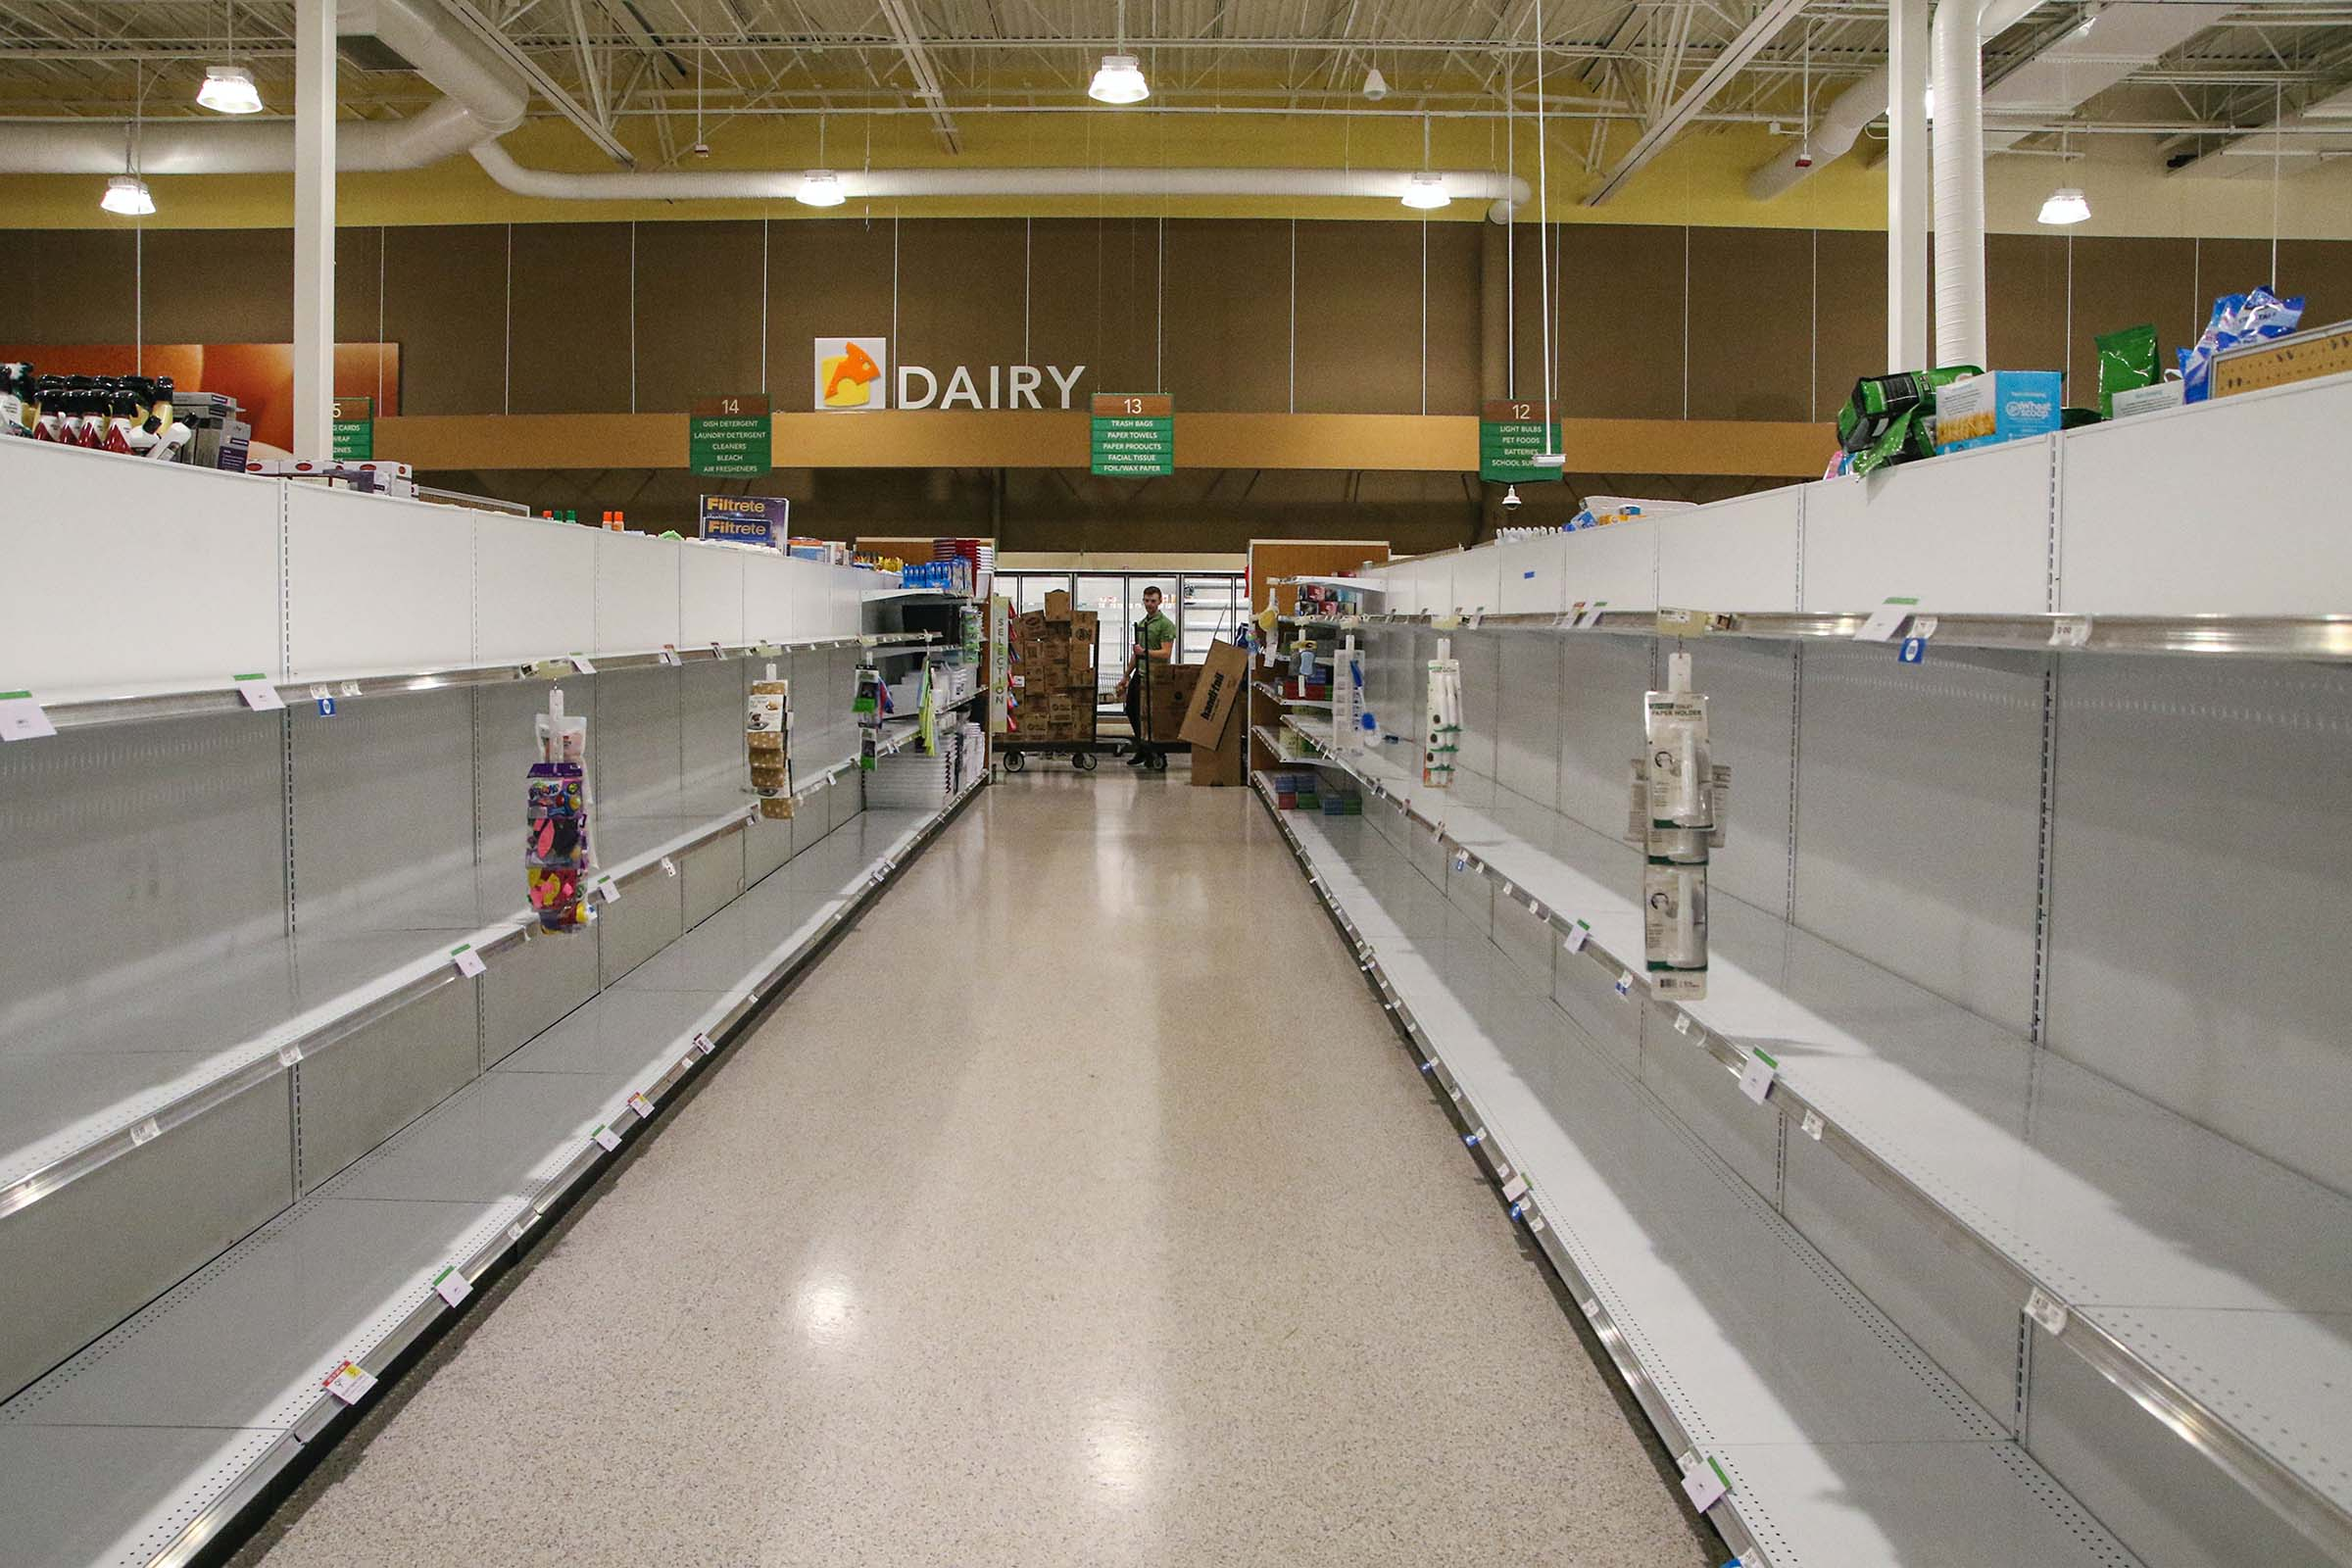 Empty shelves at store during COVID-19